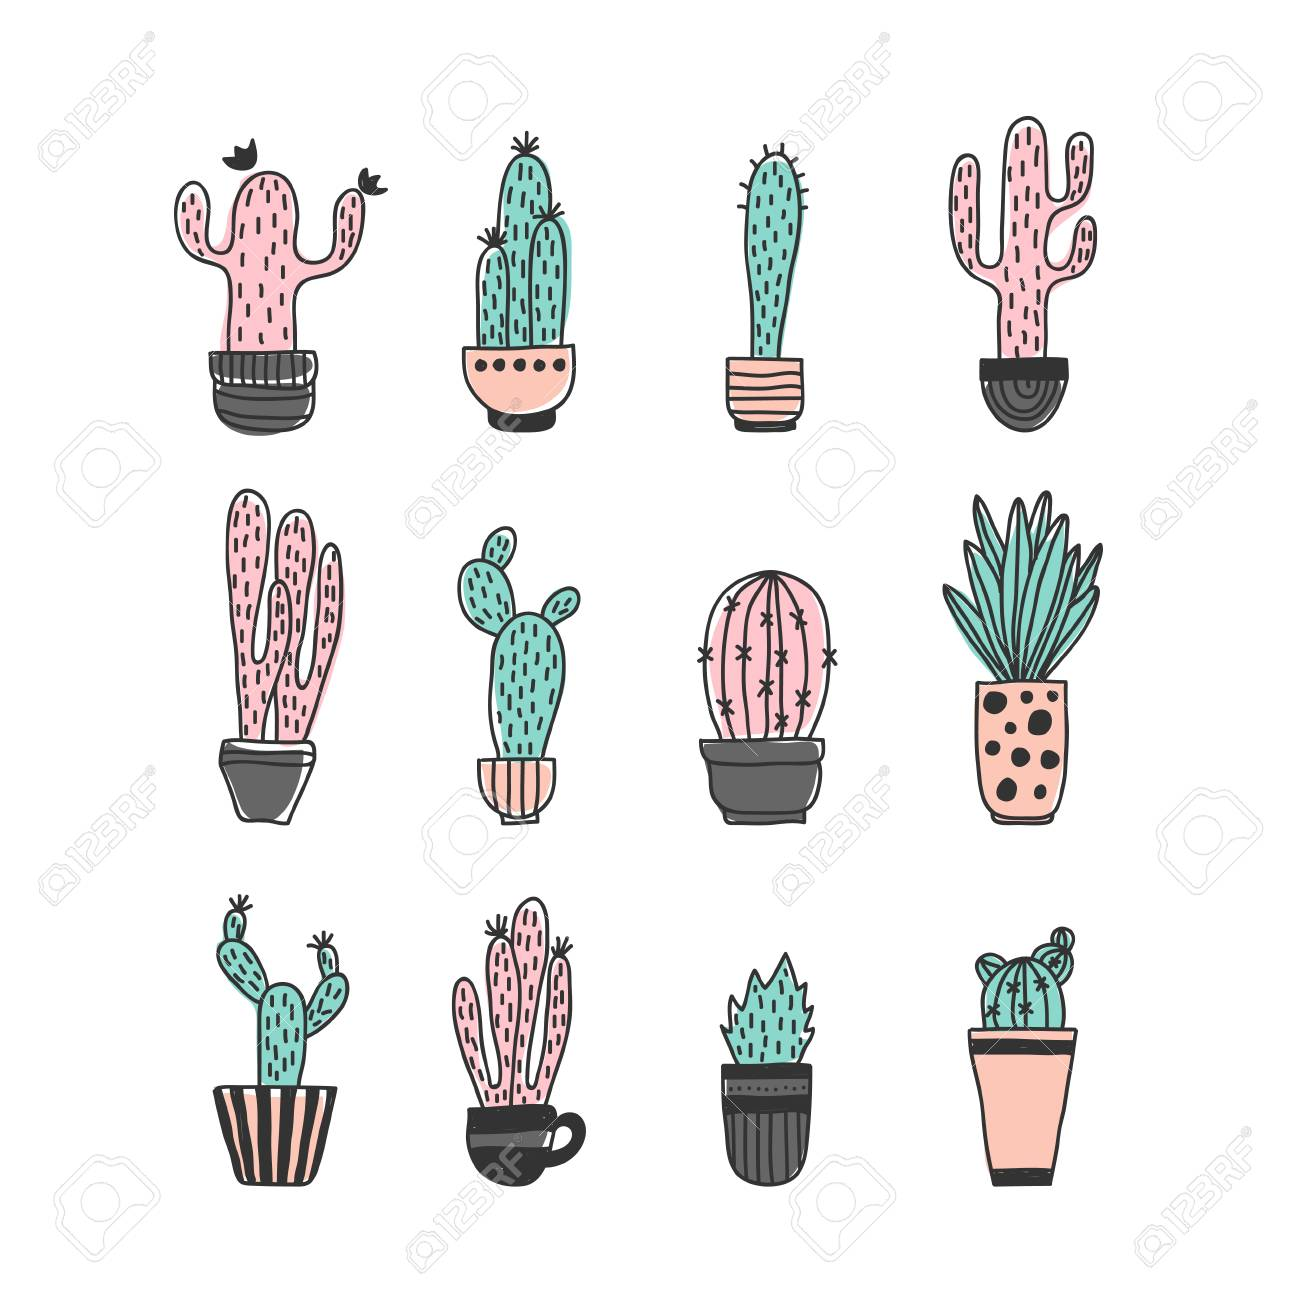 Cactus In Pot Set Colored Funny Cute Cactus Vector Set Cute Plants Mexican Cactus Set Modern Cactus Illustration Royalty Free Cliparts Vetores E Ilustracoes Stock Image 88311615